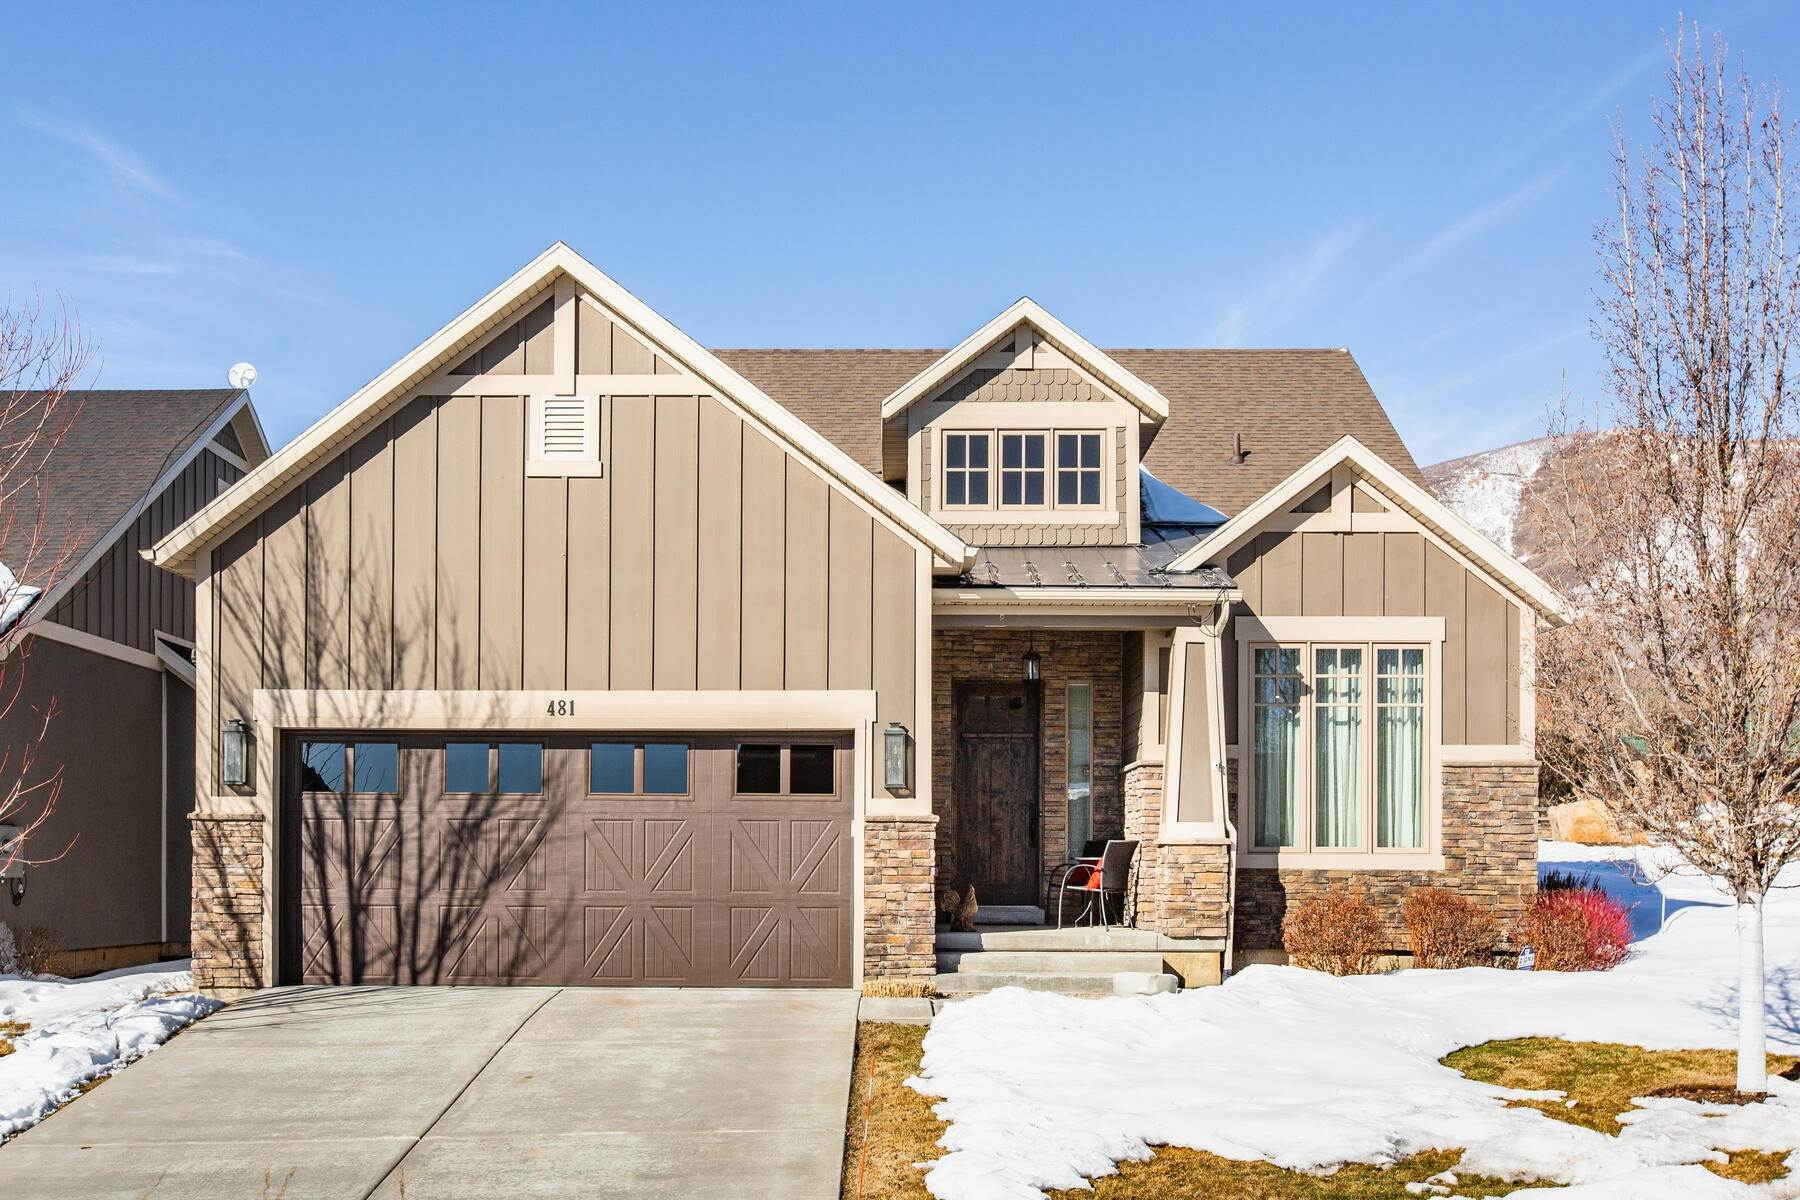 Single Family Homes for Sale at Meticulously Loved Midway Home 481 N 680 W Midway, Utah 84049 United States